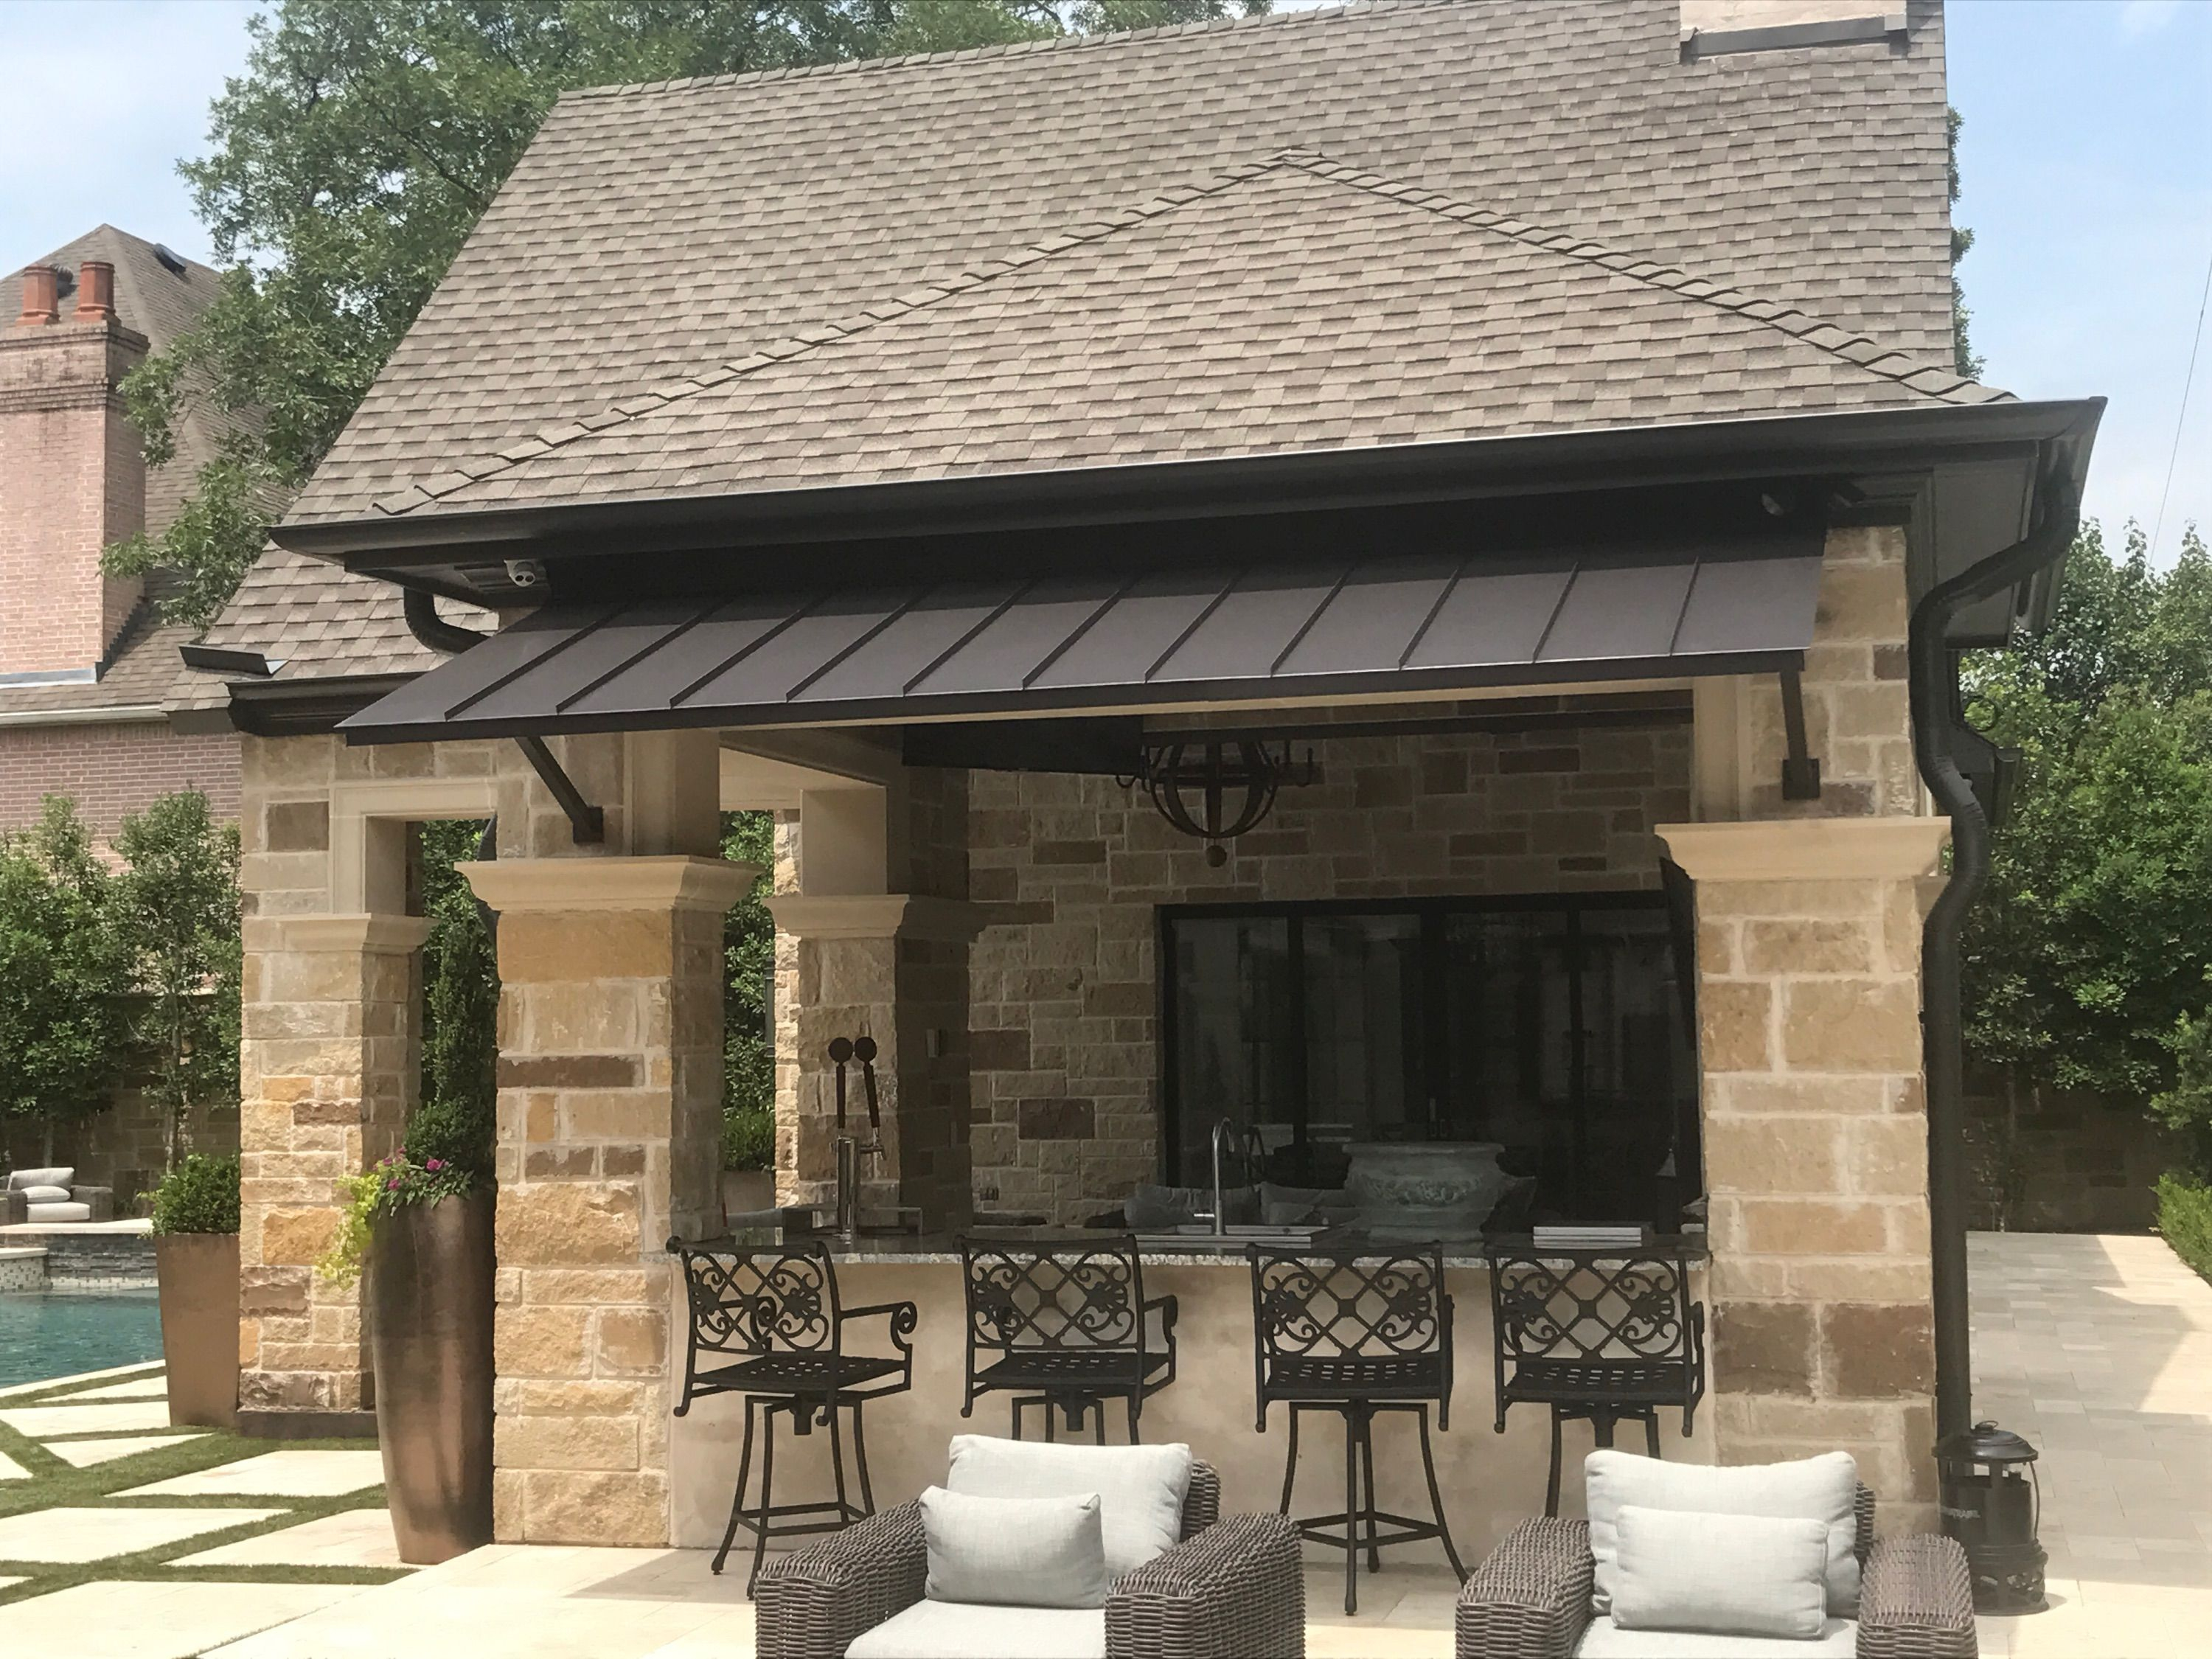 Outdoor Kitchen Awning Standing Seam Metal Roof Awning inside size 3000 X 2250